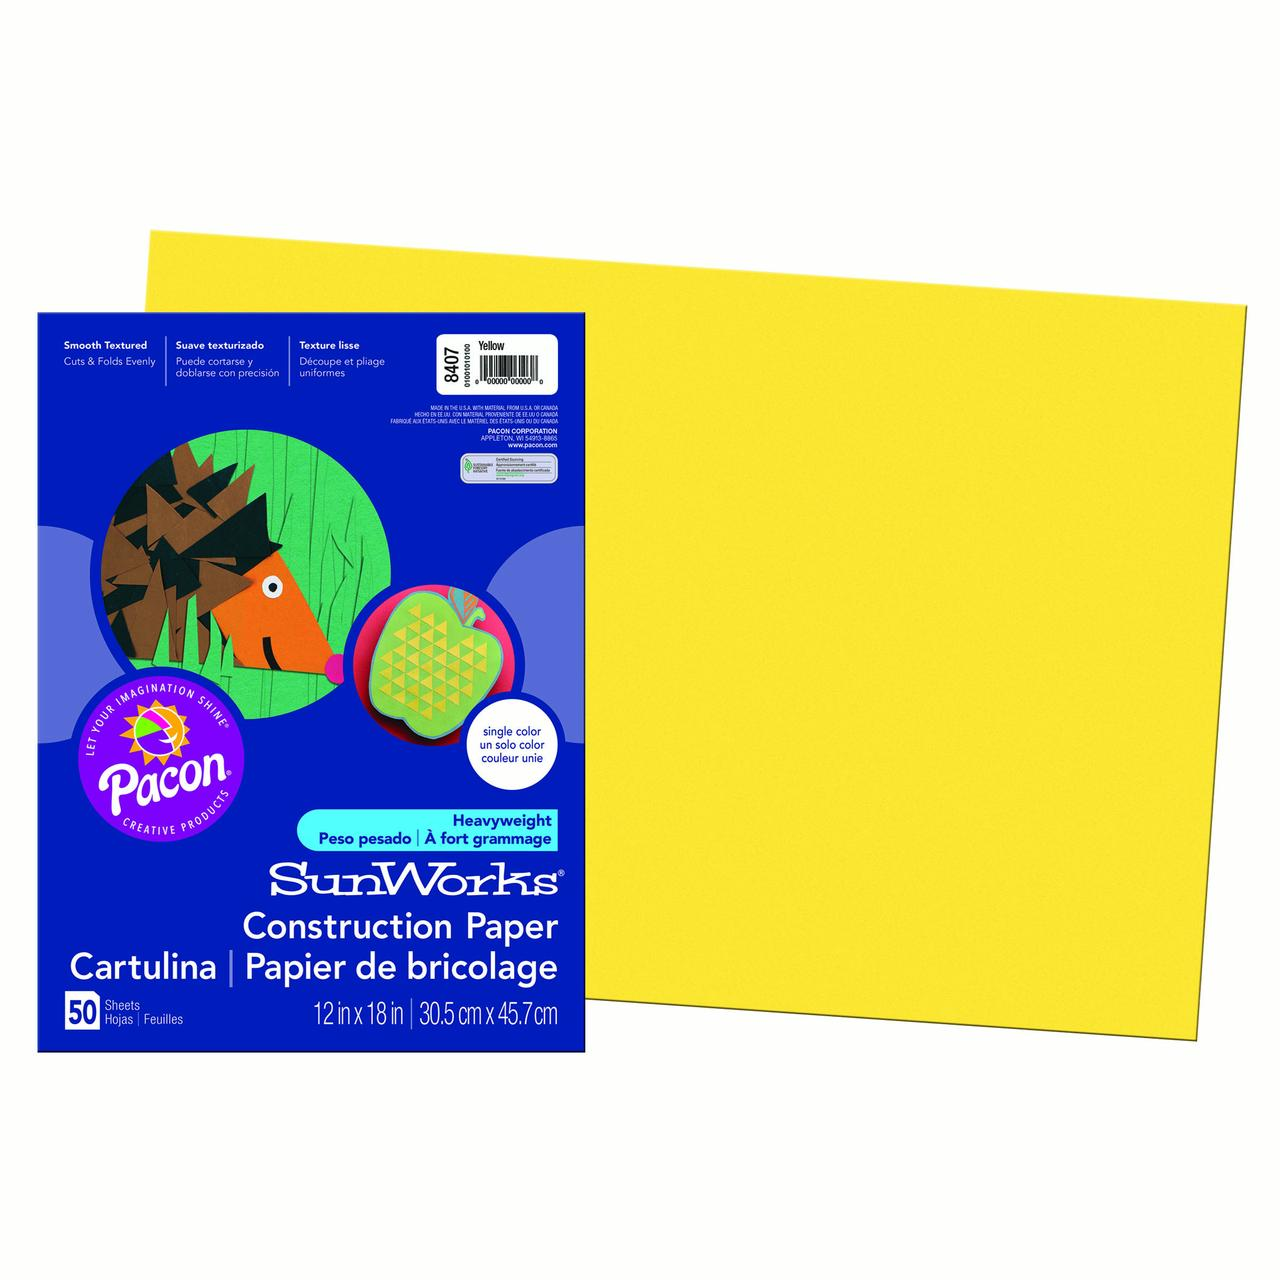 "Pacon® SunWorks® Construction Paper, 12"" x 18"", Yellow - 50 Sheets per pack, 10 packs"